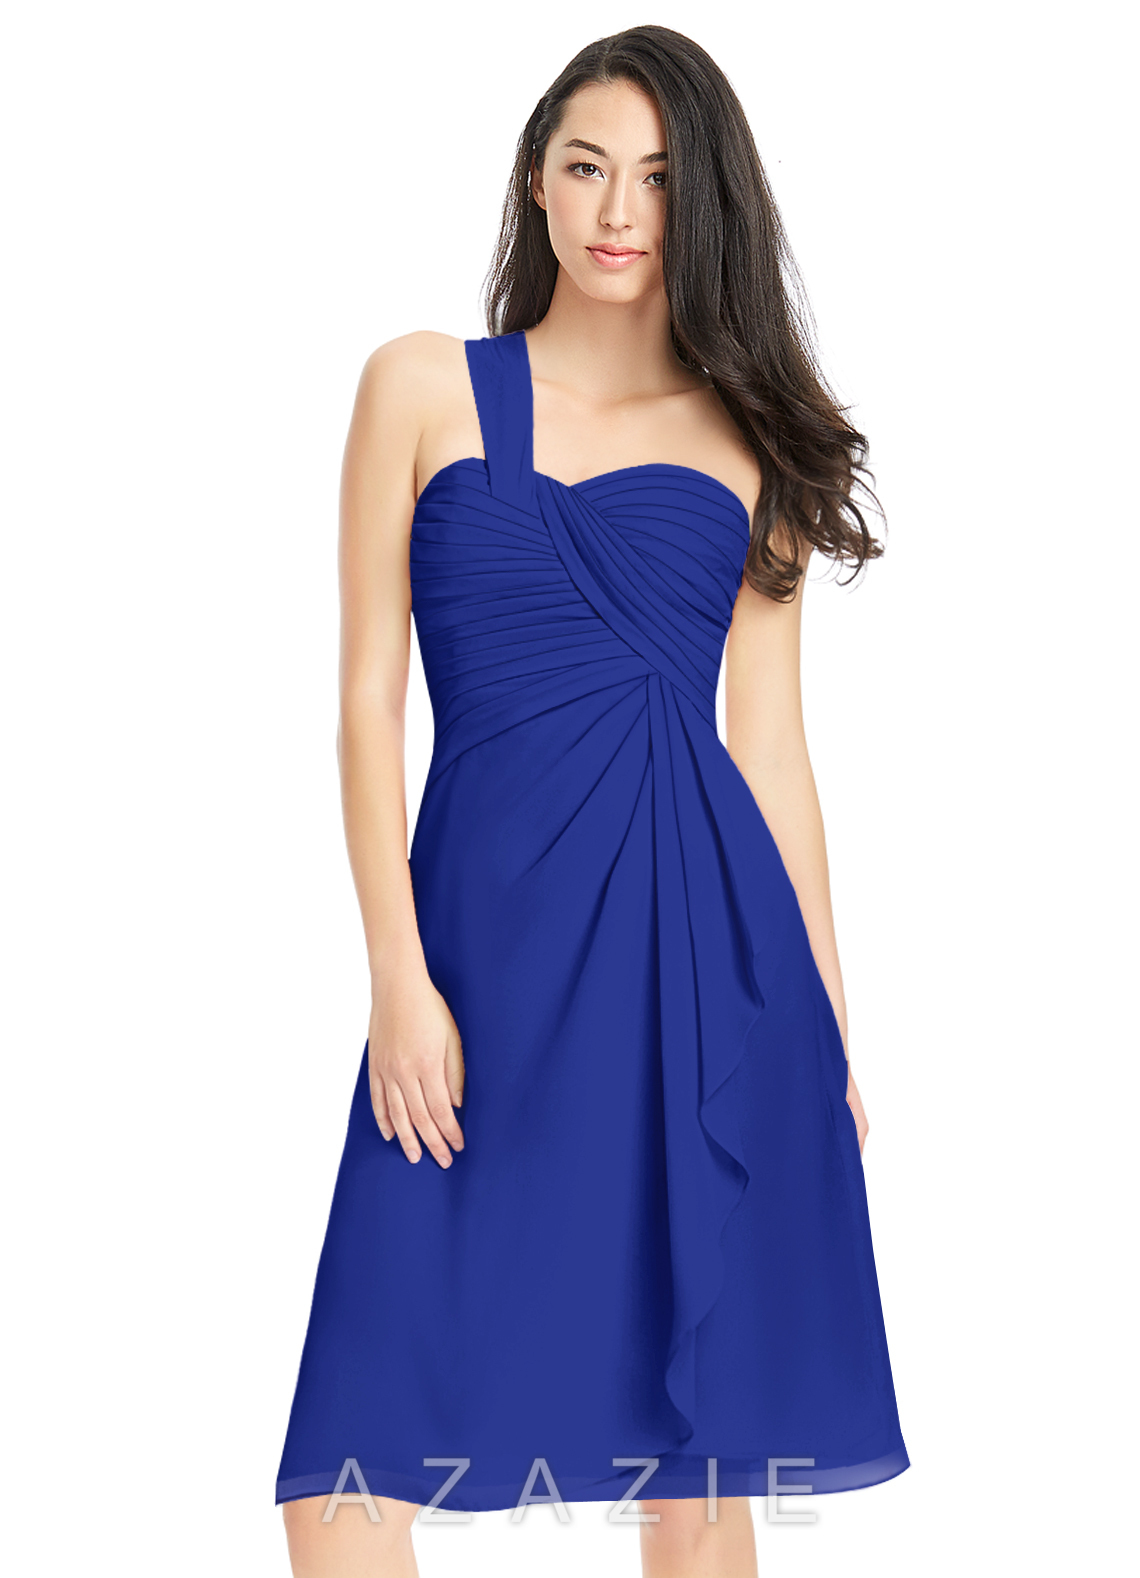 a27ad3c7c8ee Azazie Madalynn Bridesmaid Dress | Azazie